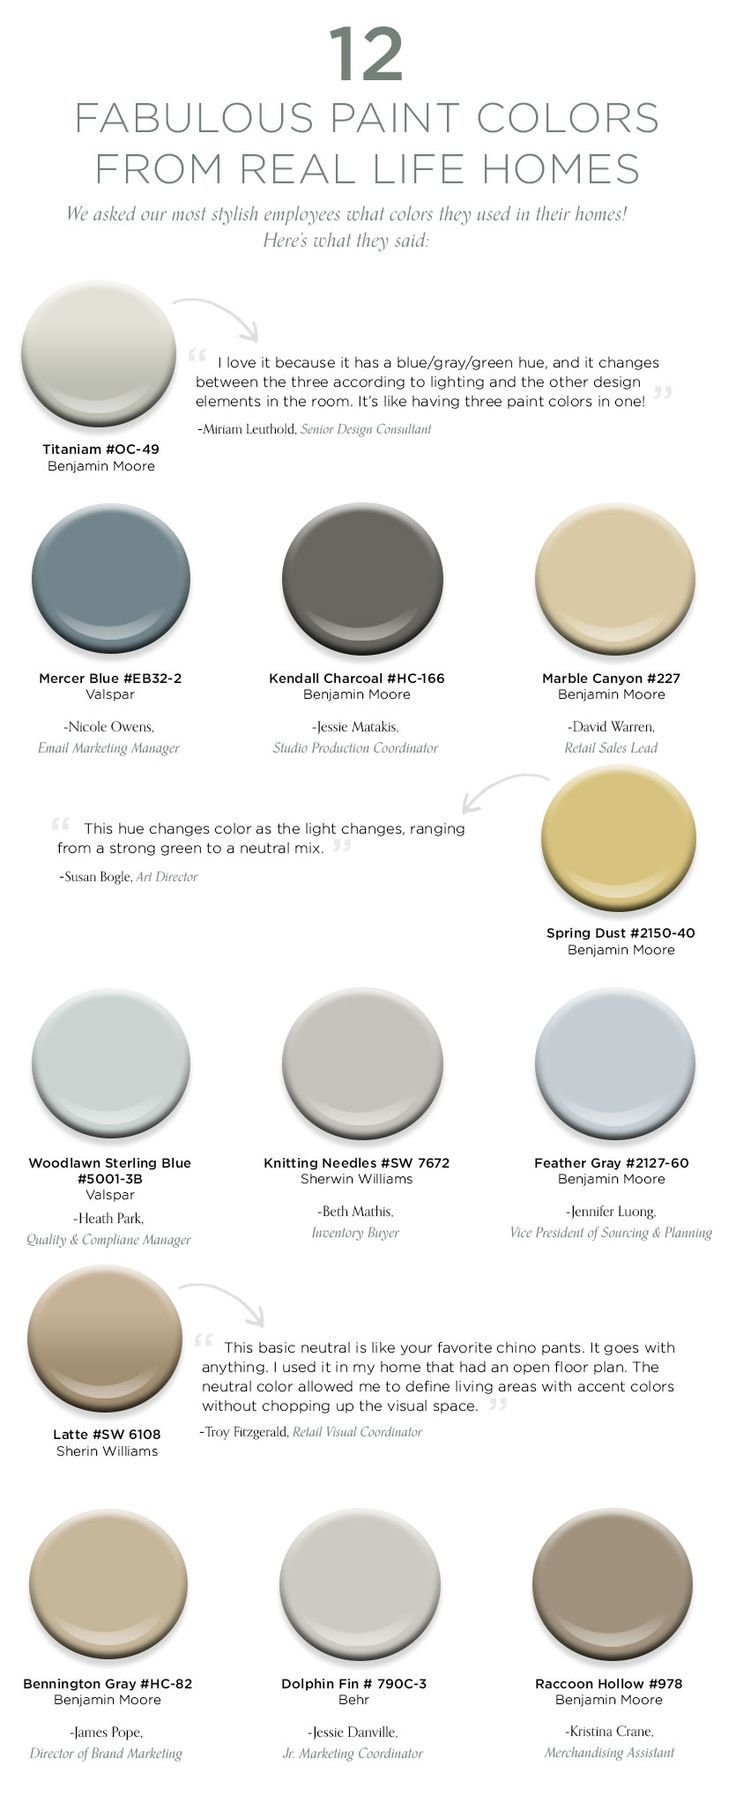 90 best paint colors images on pinterest island at home and candies Pick paint colors